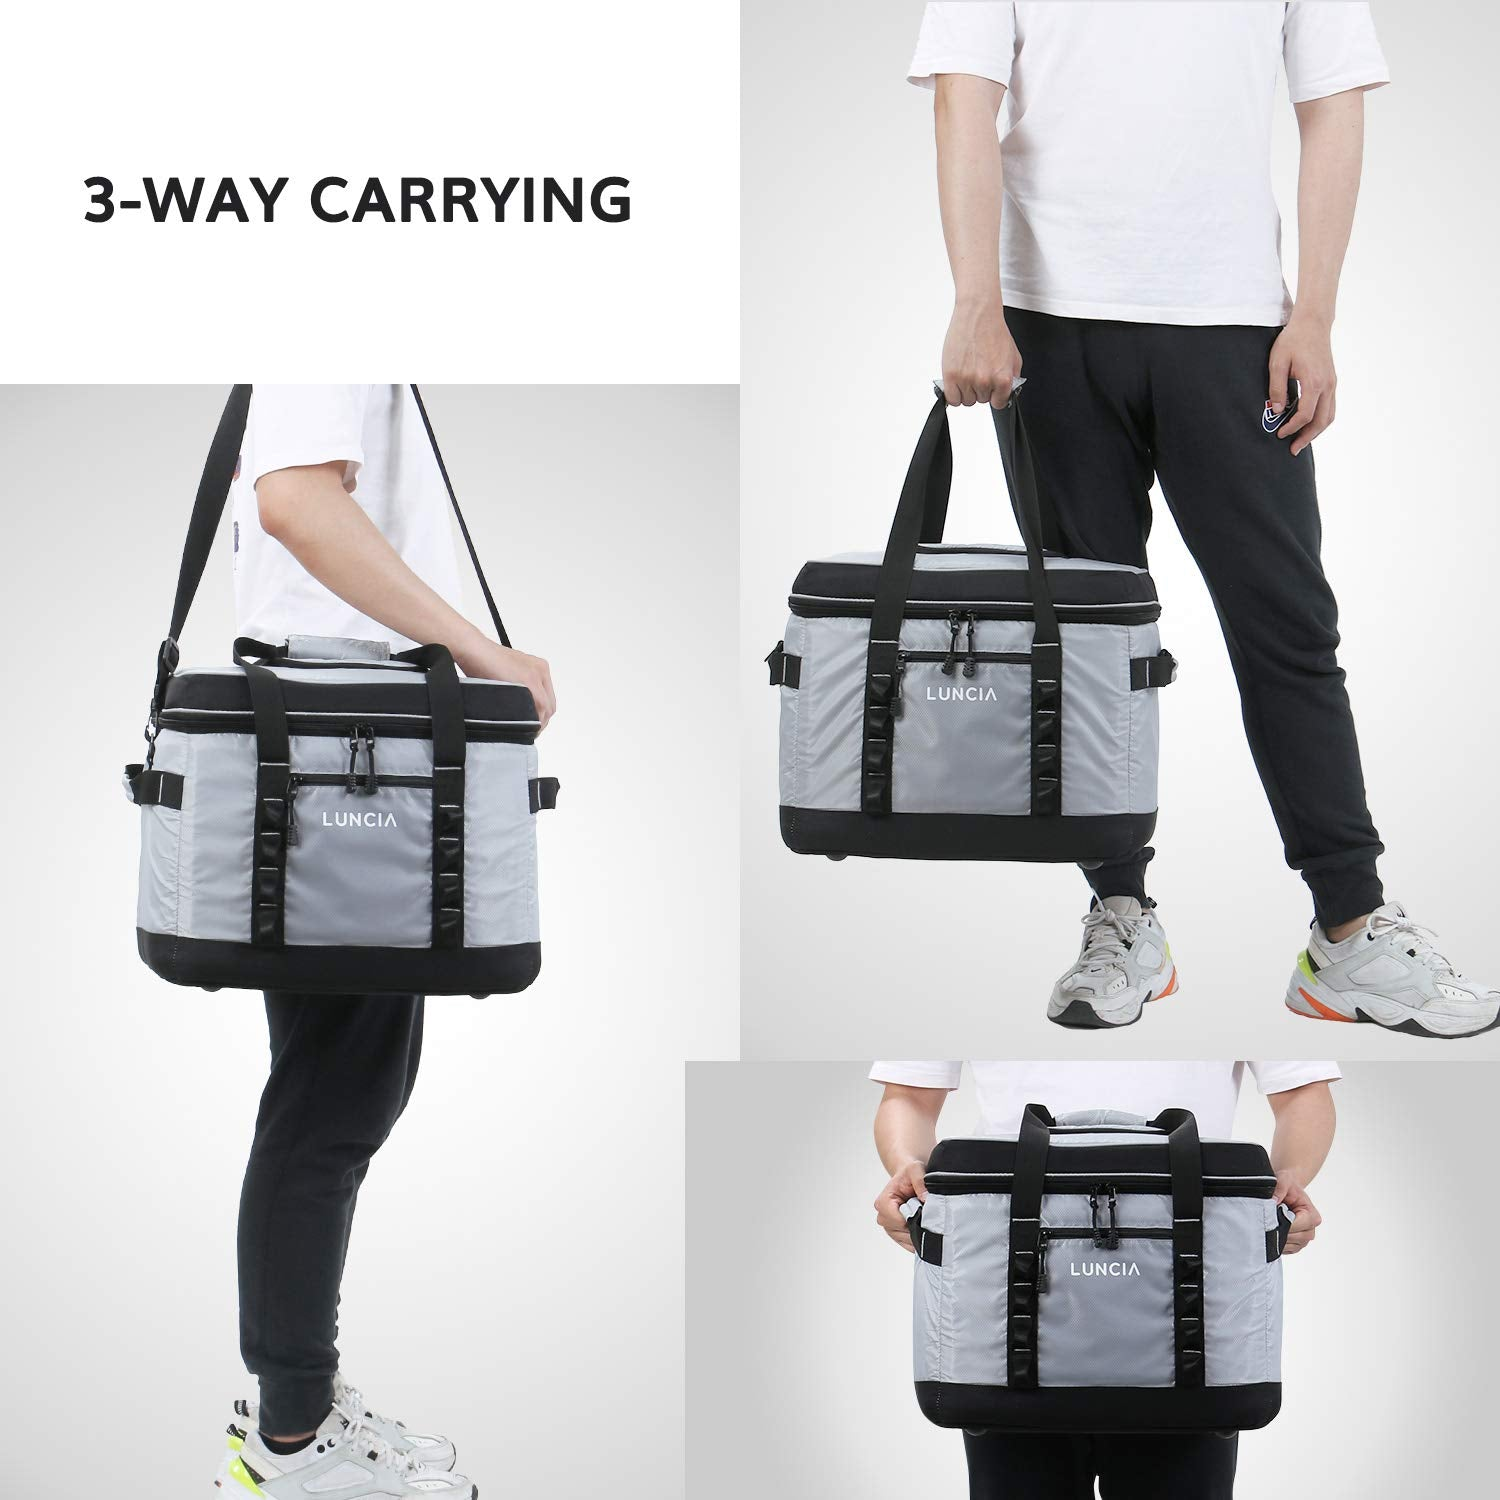 Lifewit cooler bag